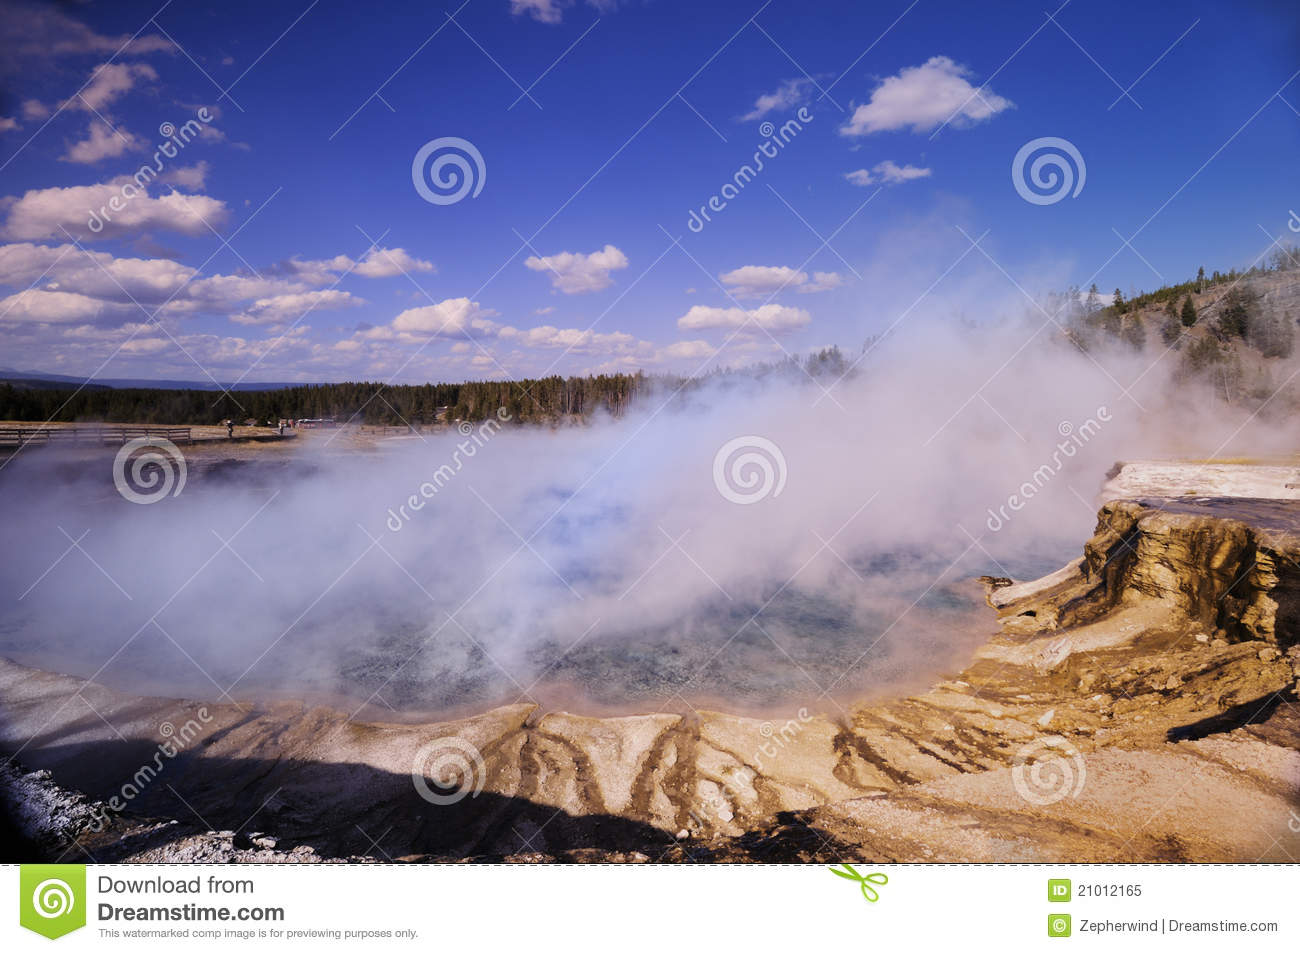 yellowstone is the largest geyser local Marvel at a volcano's hidden power rising up in colorful hot springs, mudpots,  and geysers explore mountains, forests, and lakes to watch wildlife and witness .